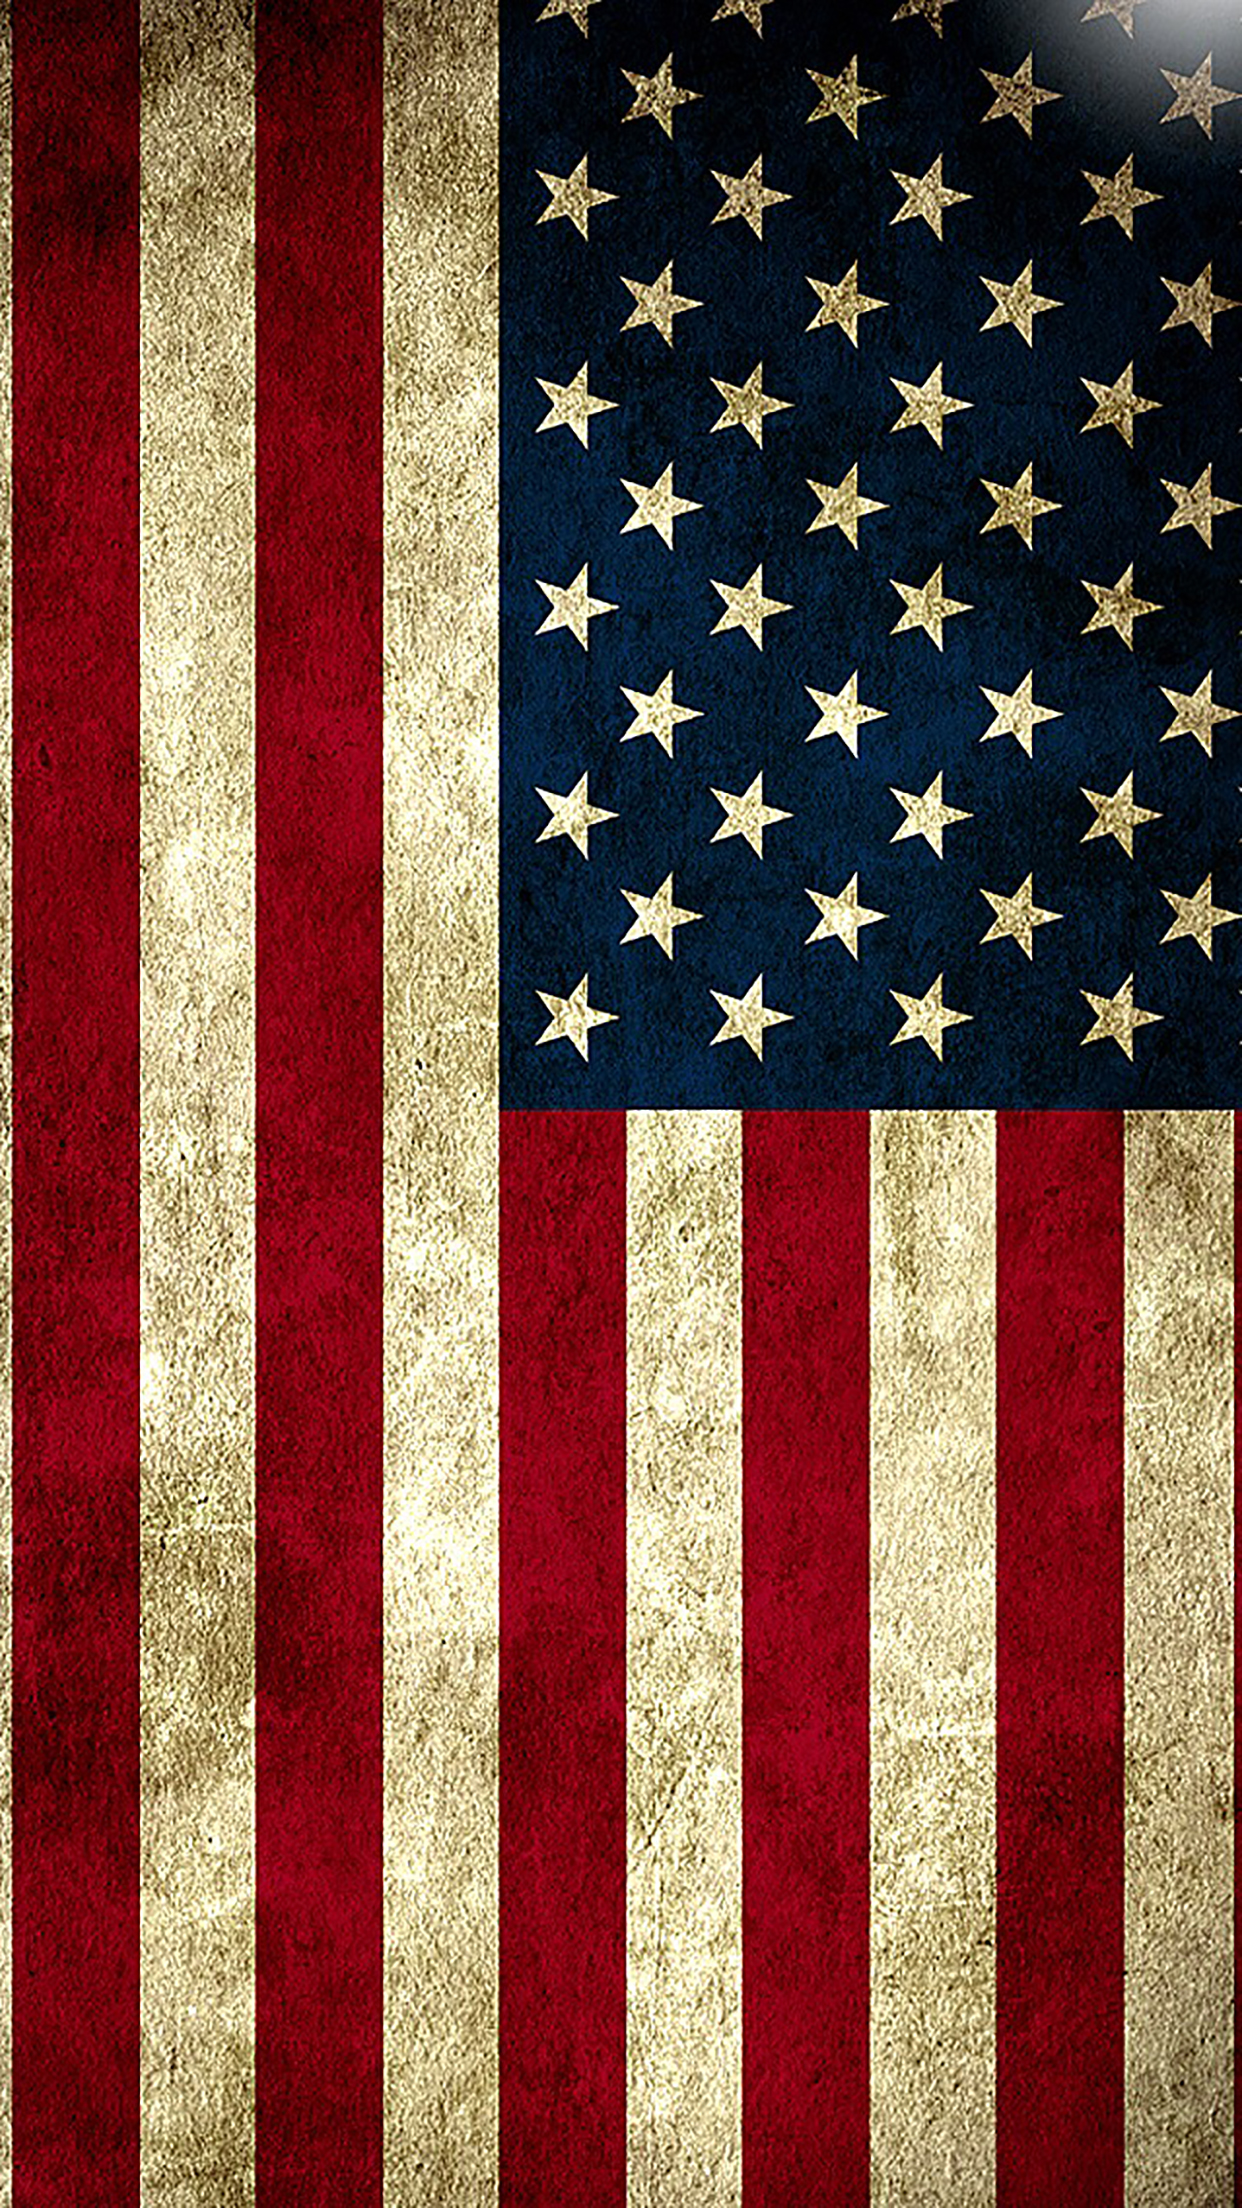 Iphone 6s Plus Live Wallpaper American Flag 3 Wallpaper For Iphone X 8 7 6 Free